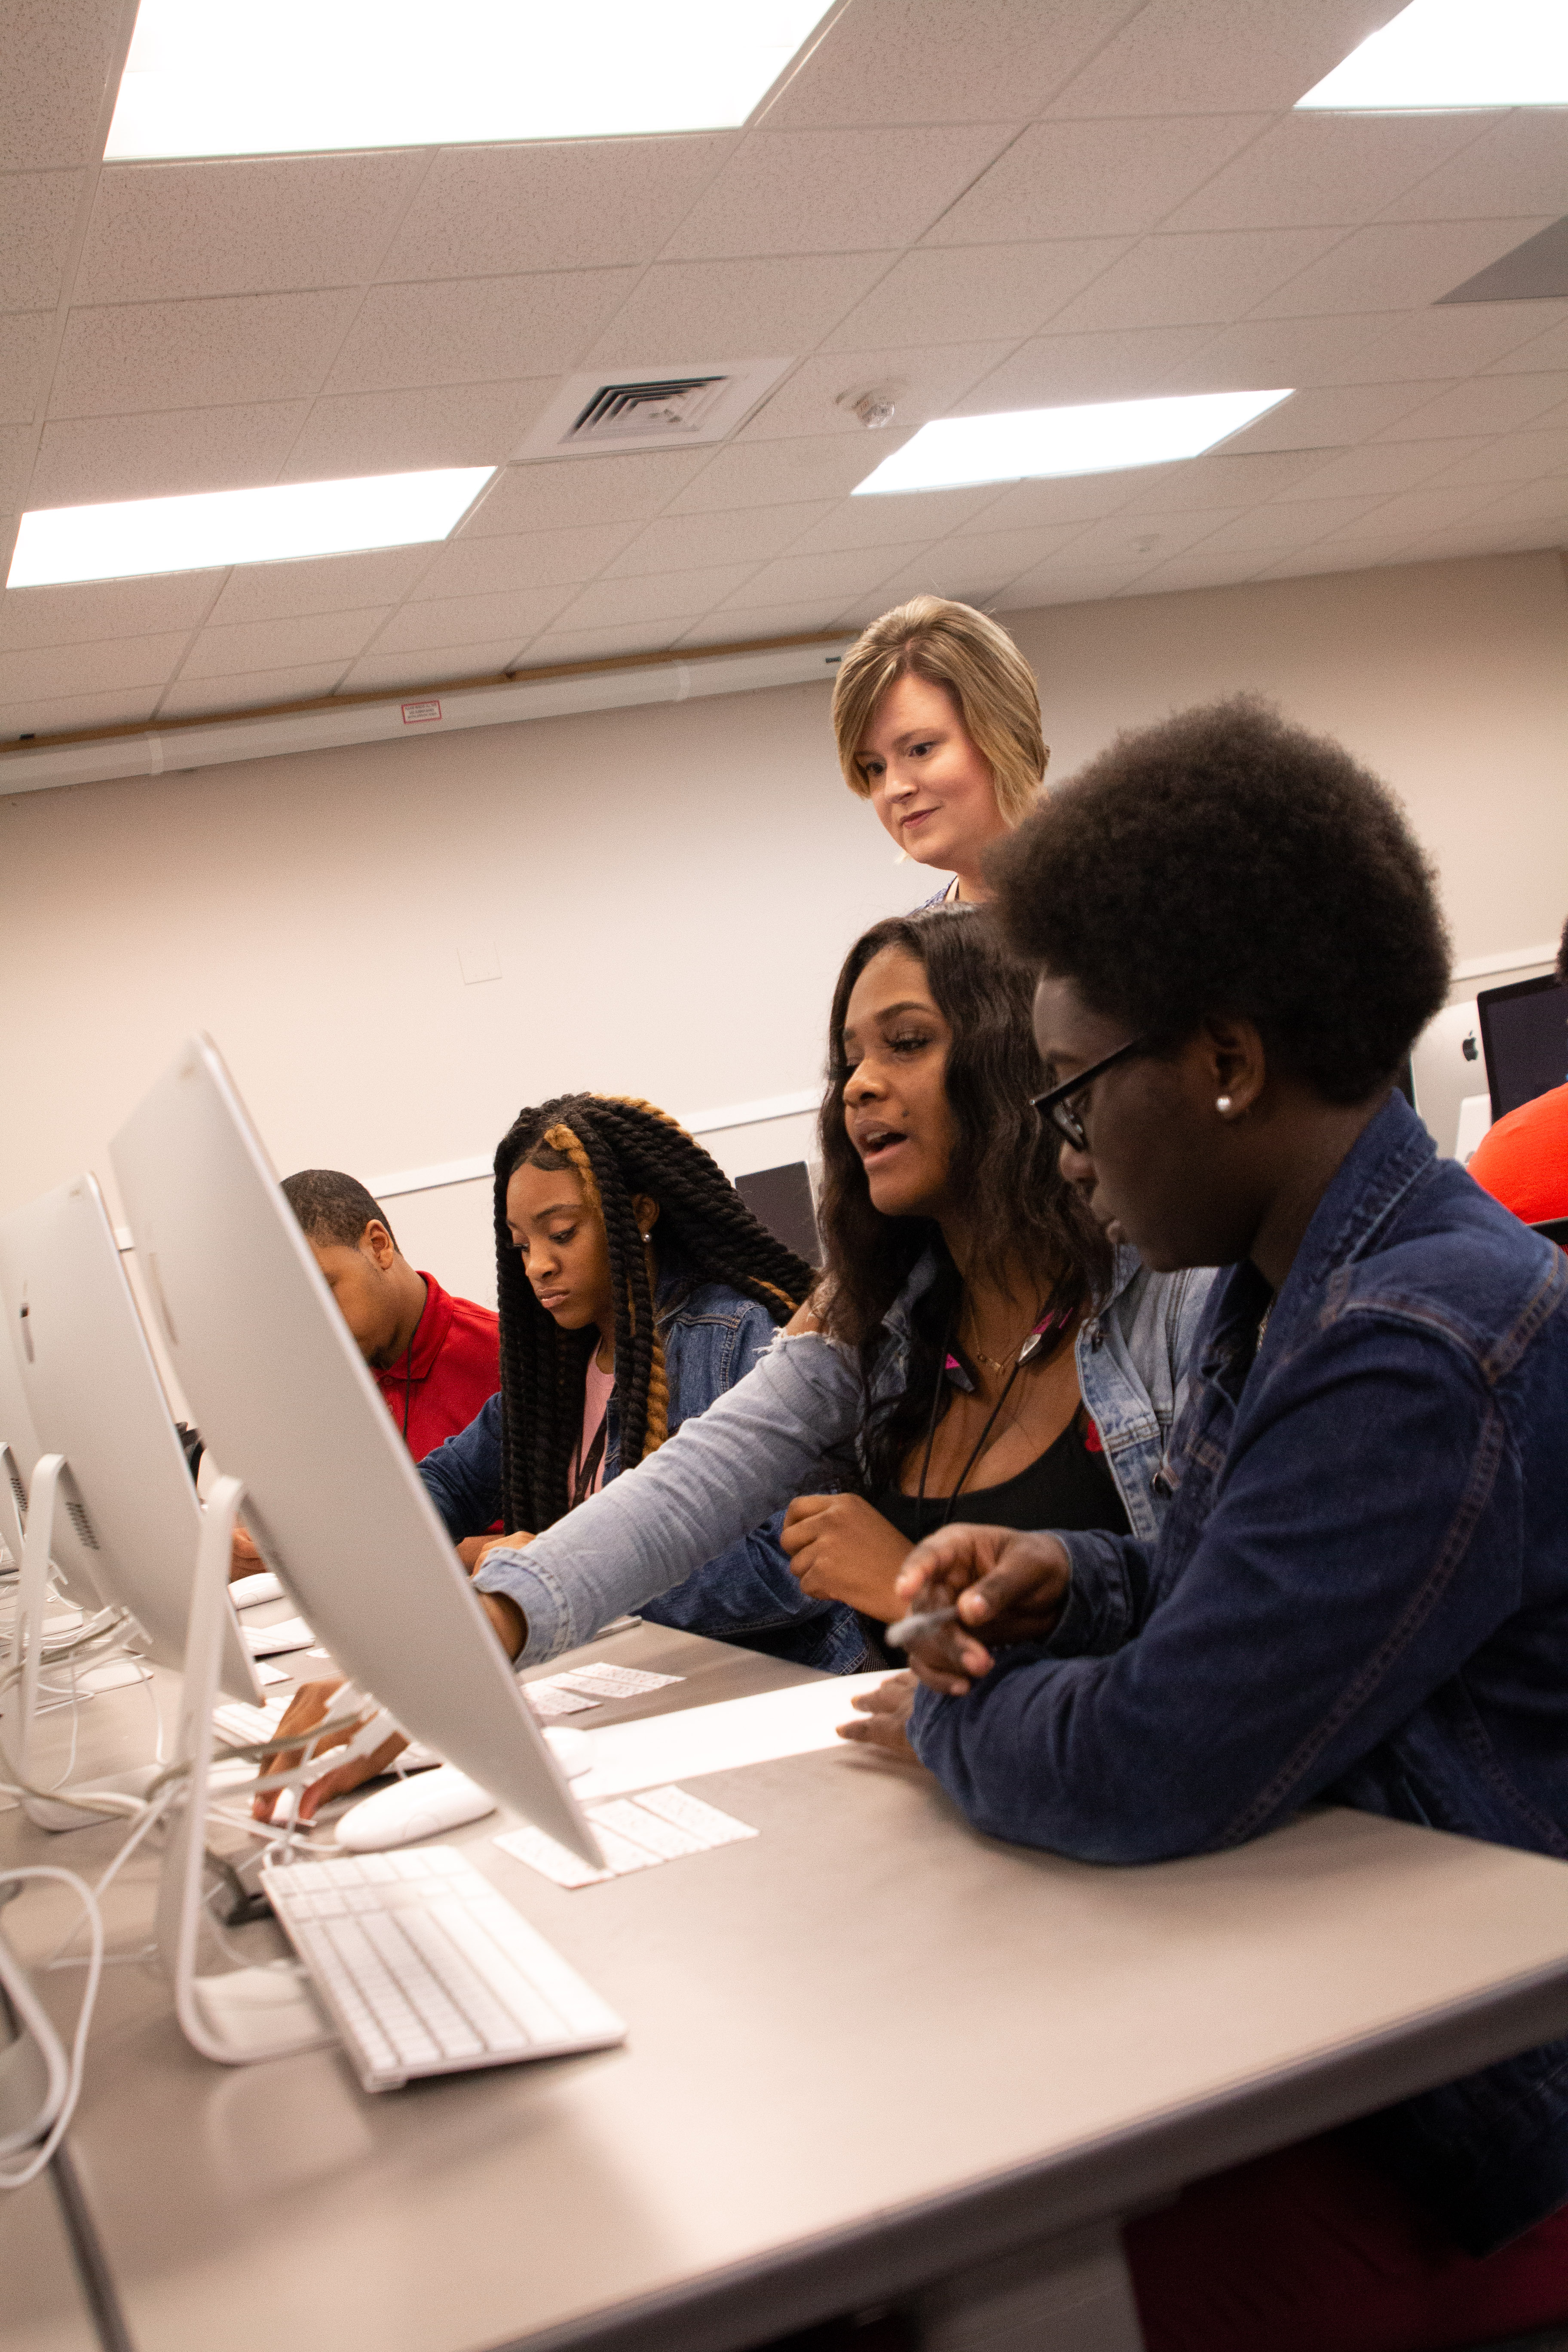 Andrea Ziegler, Center for Community-Based Partnerships director for community education, looks on as students work during the STEM Entrepreneurship Academy summer camp.